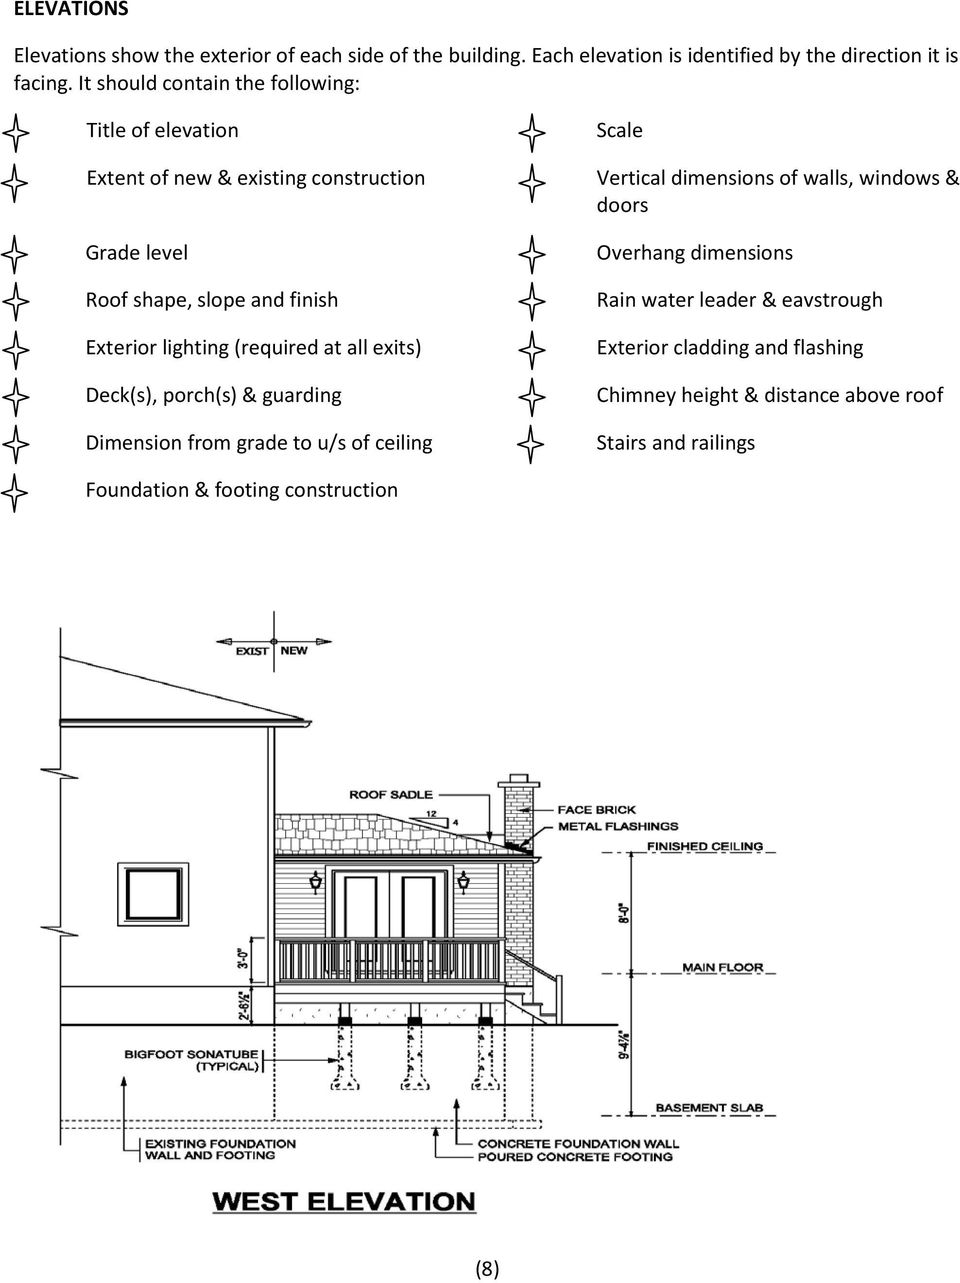 (required at all exits) Deck(s), porch(s) & guarding Dimension from grade to u/s of ceiling Scale Vertical dimensions of walls, windows & doors